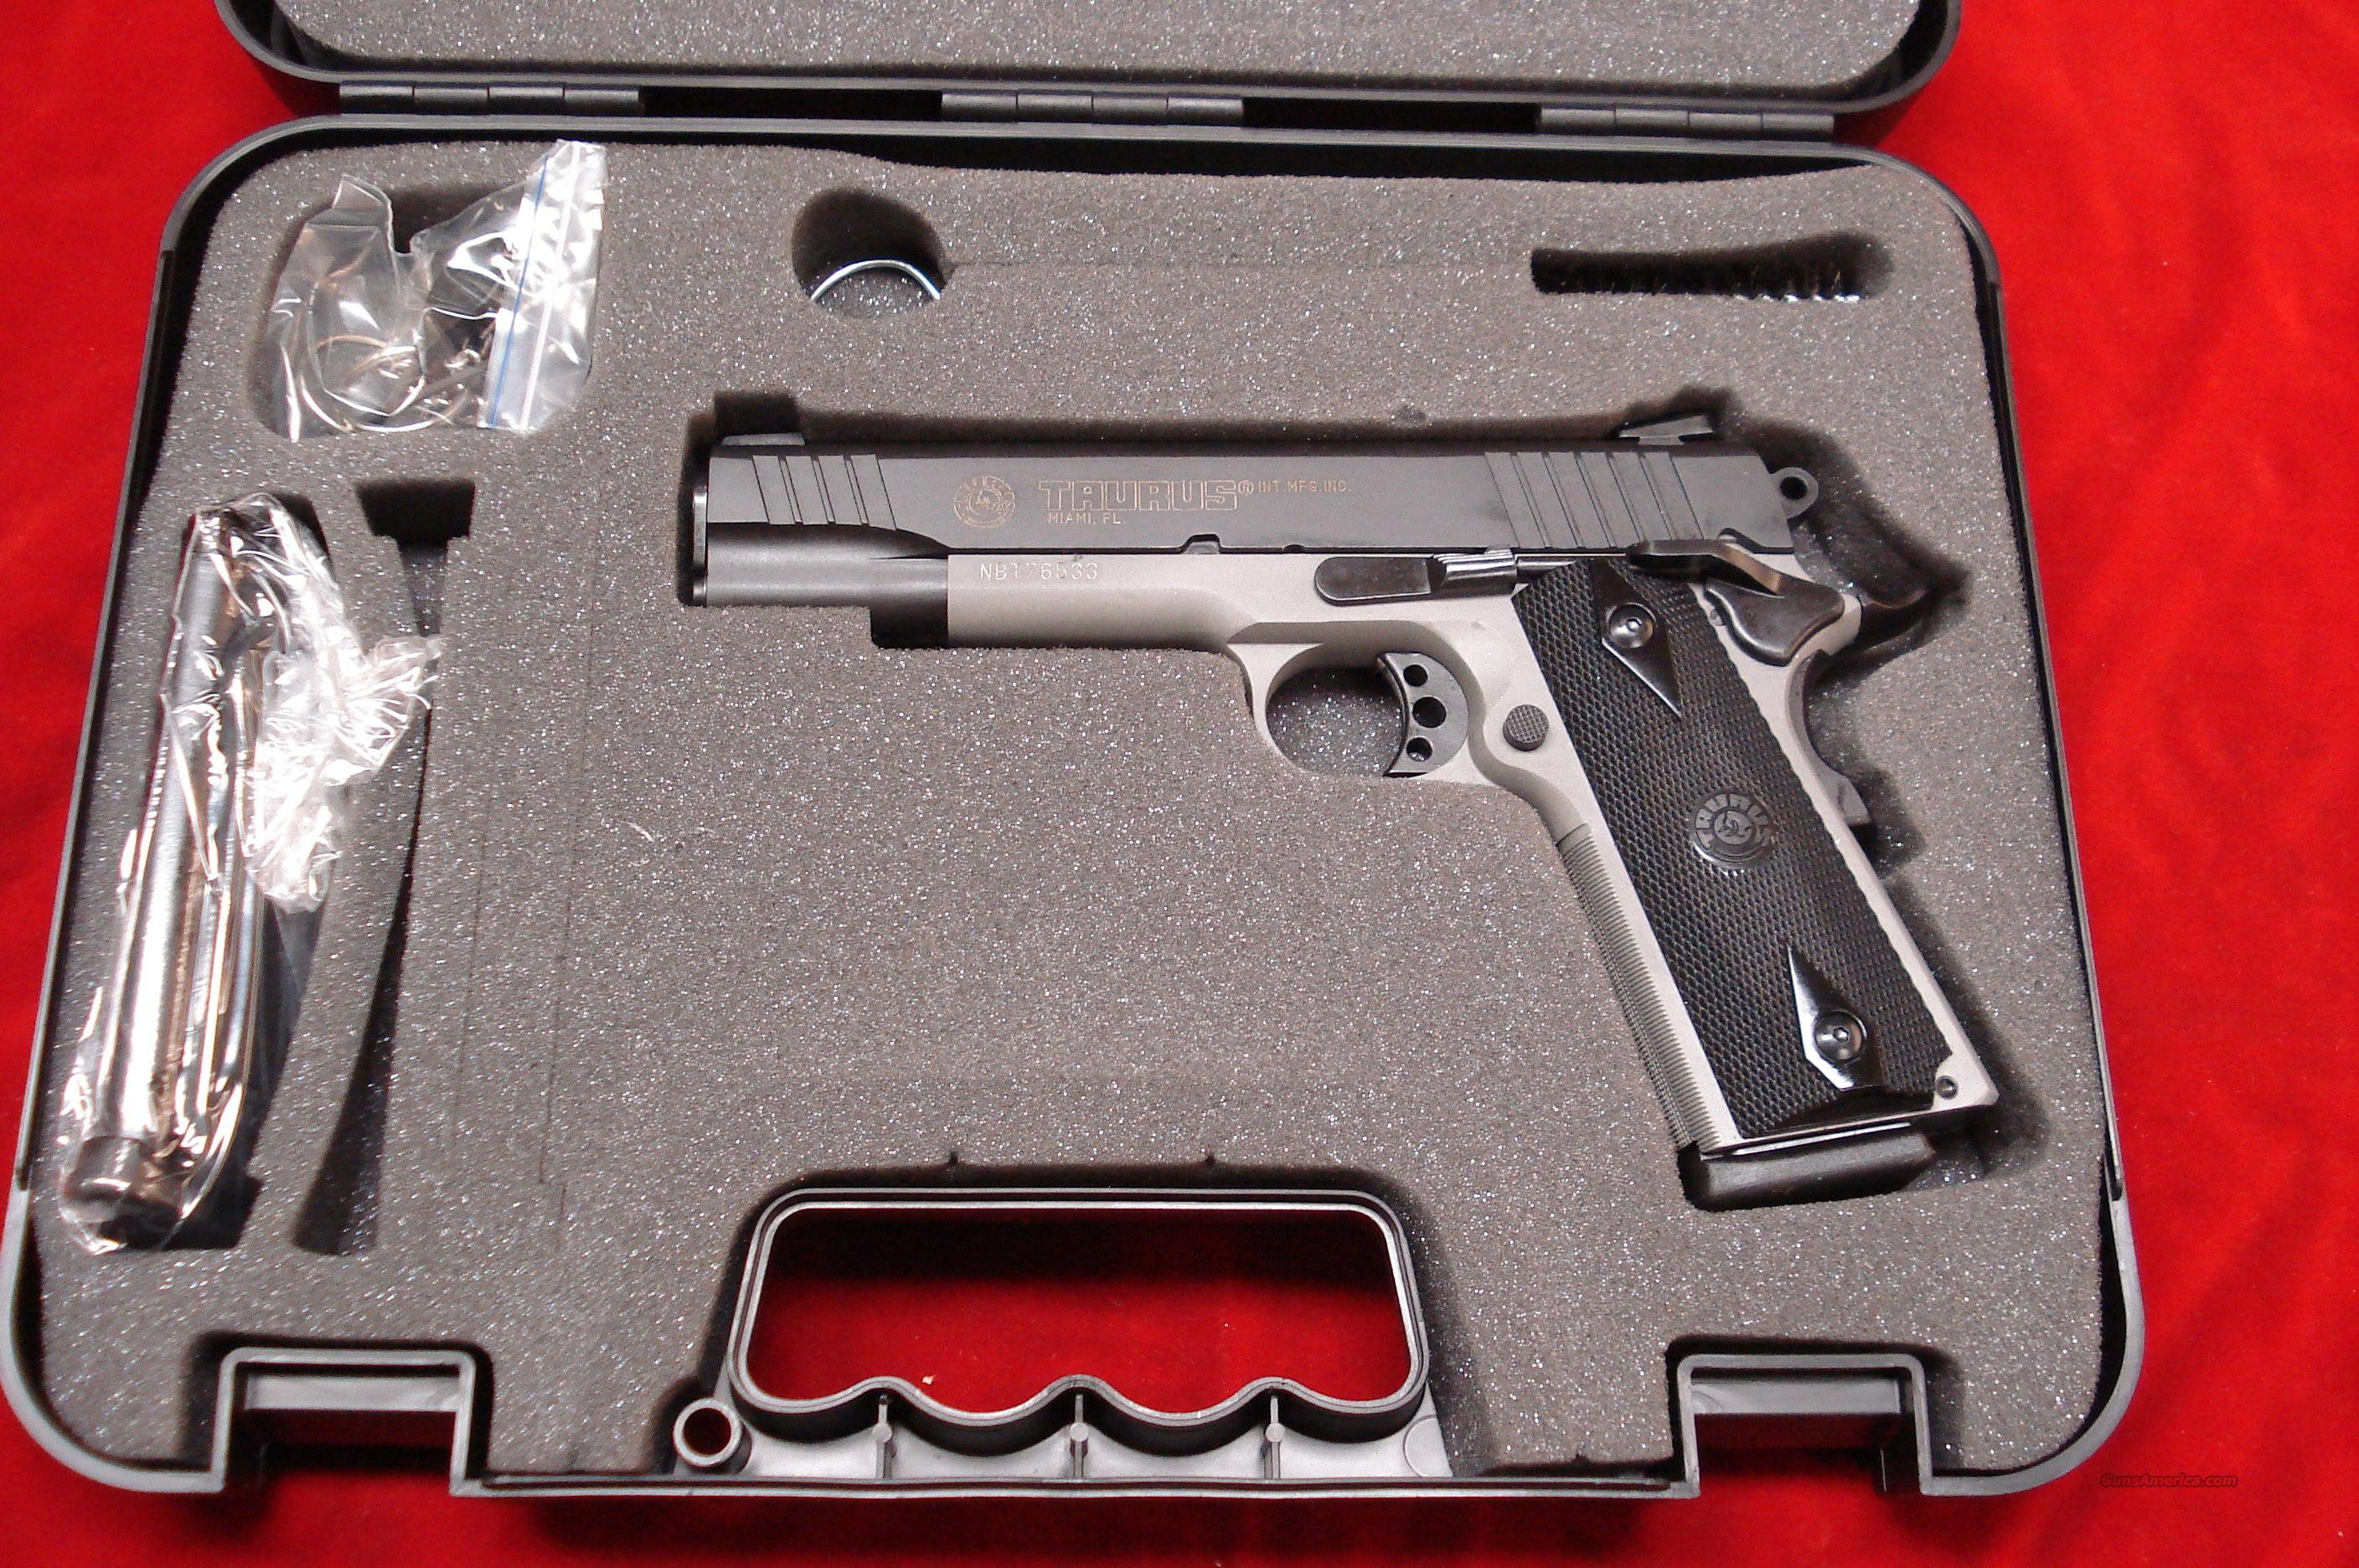 TAURUS 1911 BLUE AND GRAY ALLOY NEW  Guns > Pistols > Taurus Pistols/Revolvers > Pistols > Steel Frame